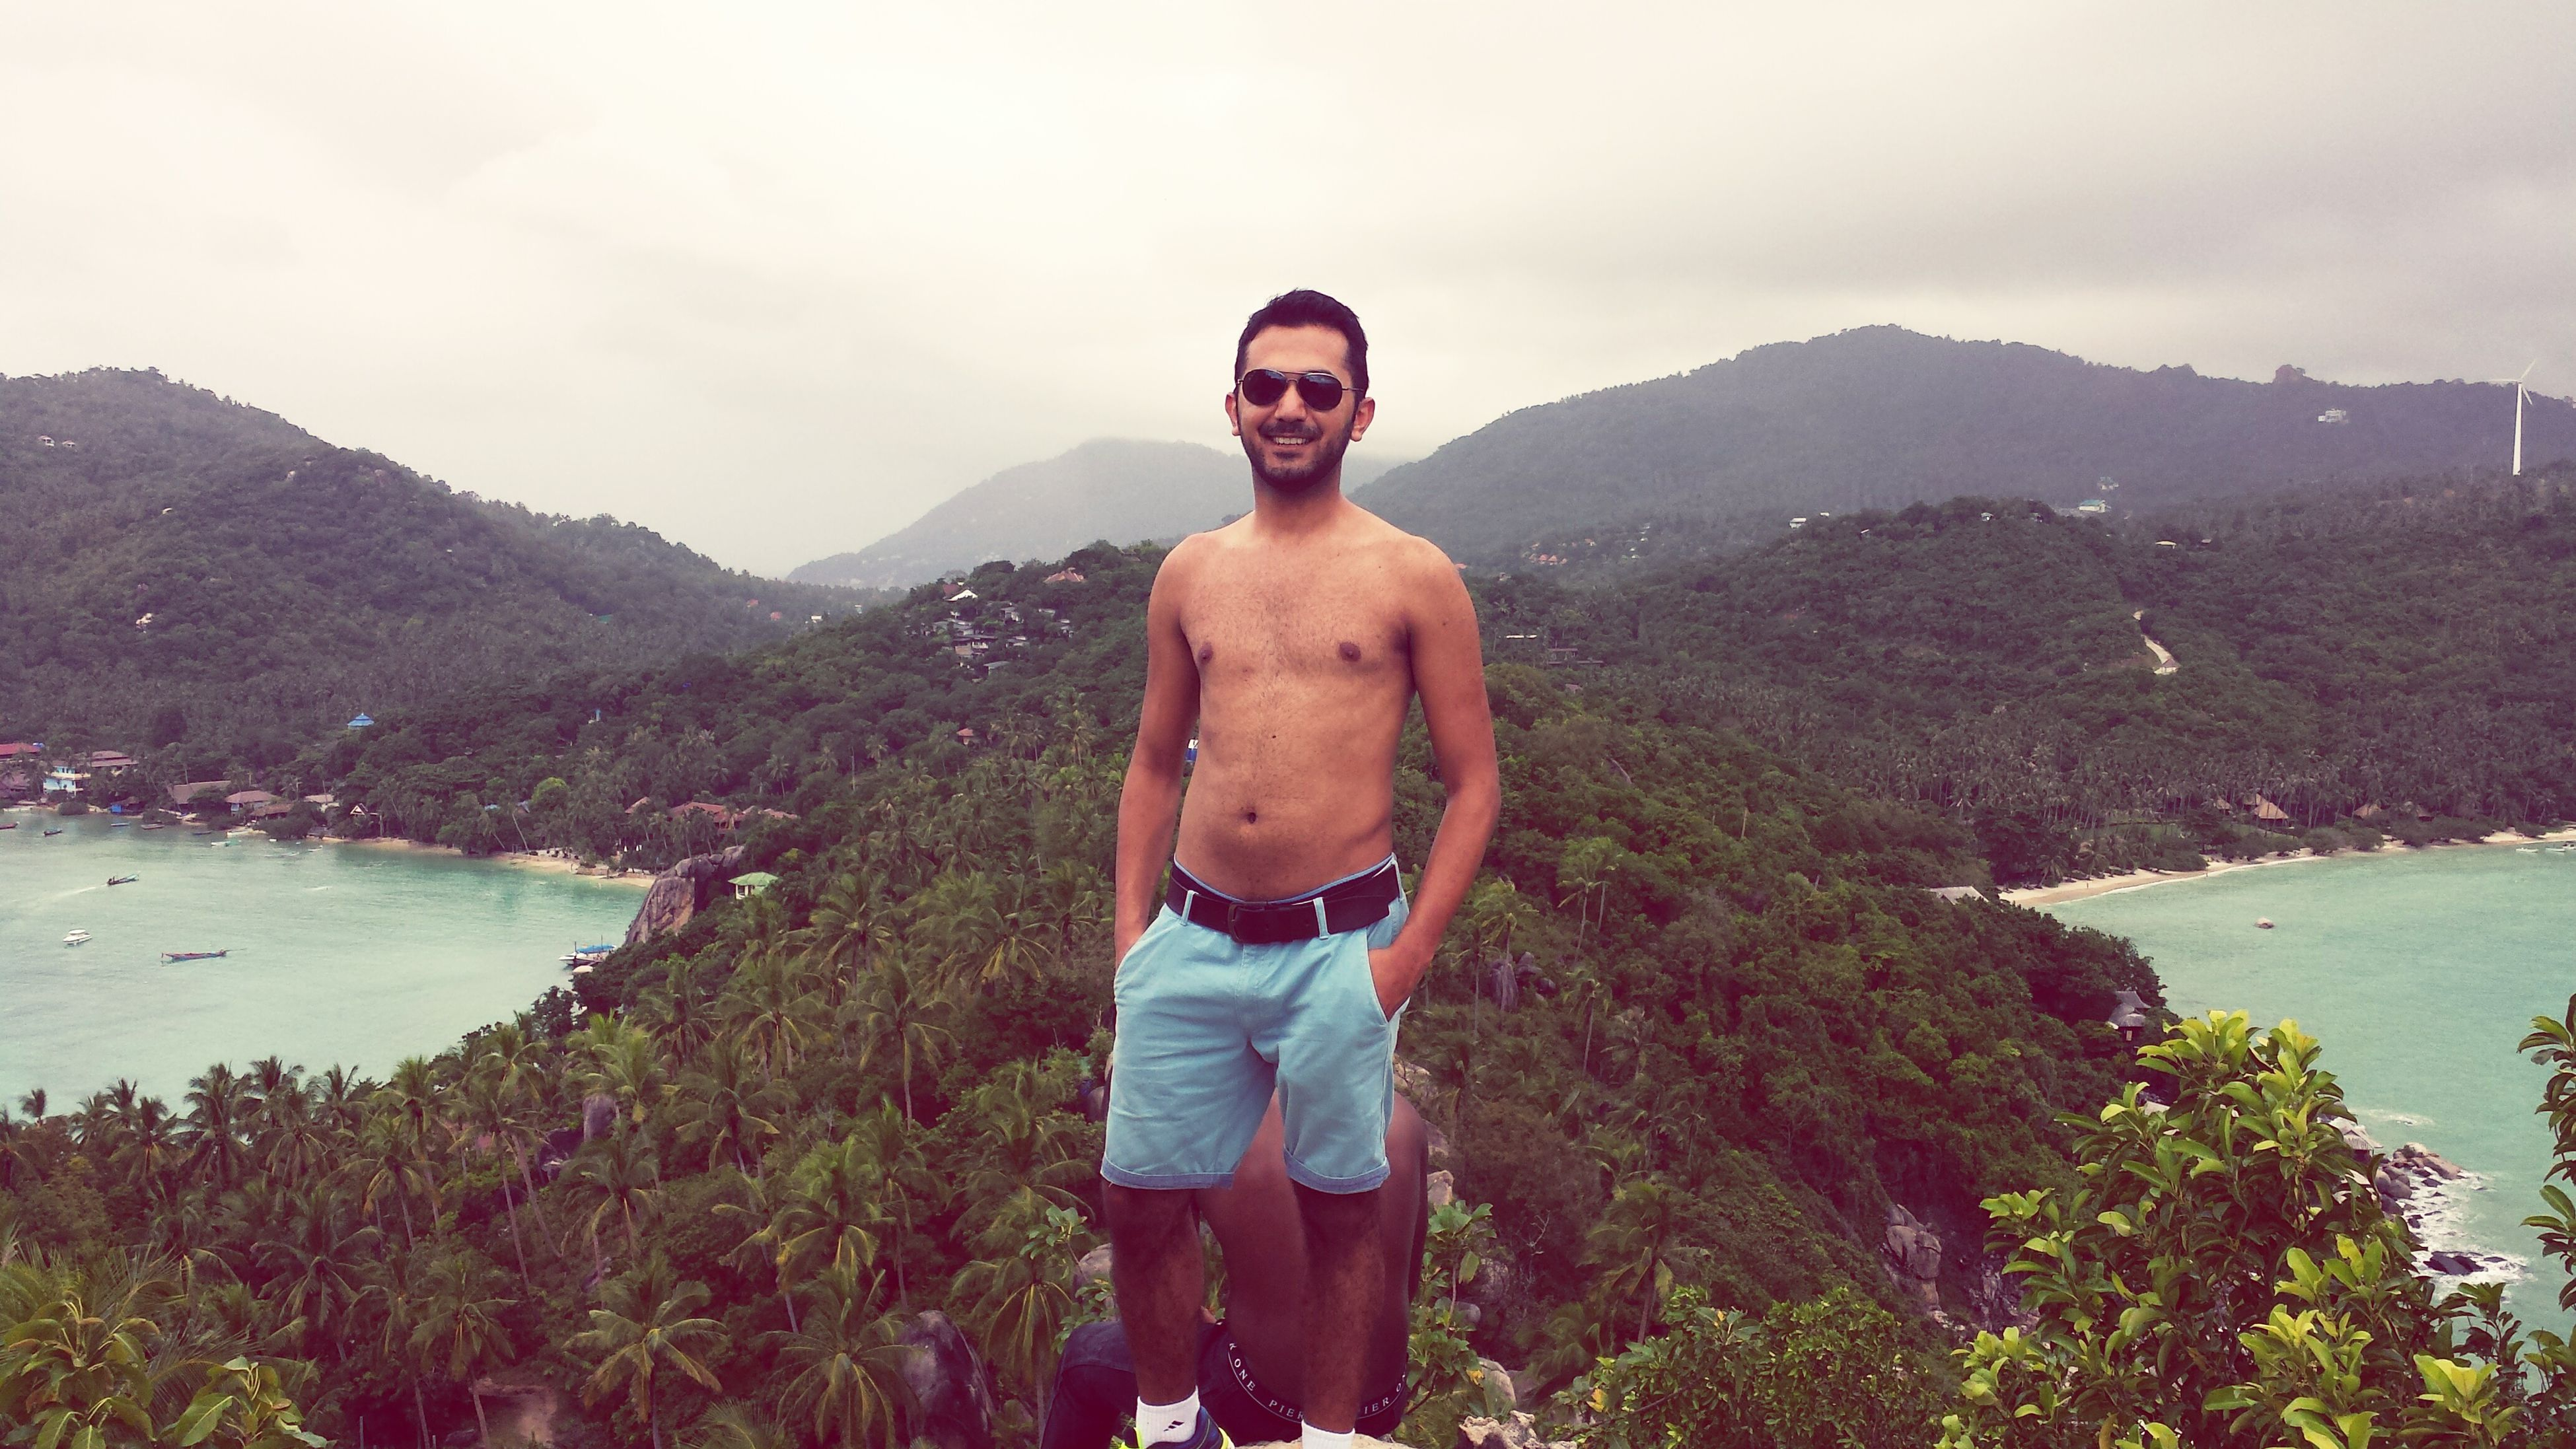 mountain, young adult, person, lifestyles, young men, looking at camera, casual clothing, leisure activity, portrait, water, smiling, standing, sky, mountain range, front view, three quarter length, sunglasses, scenics